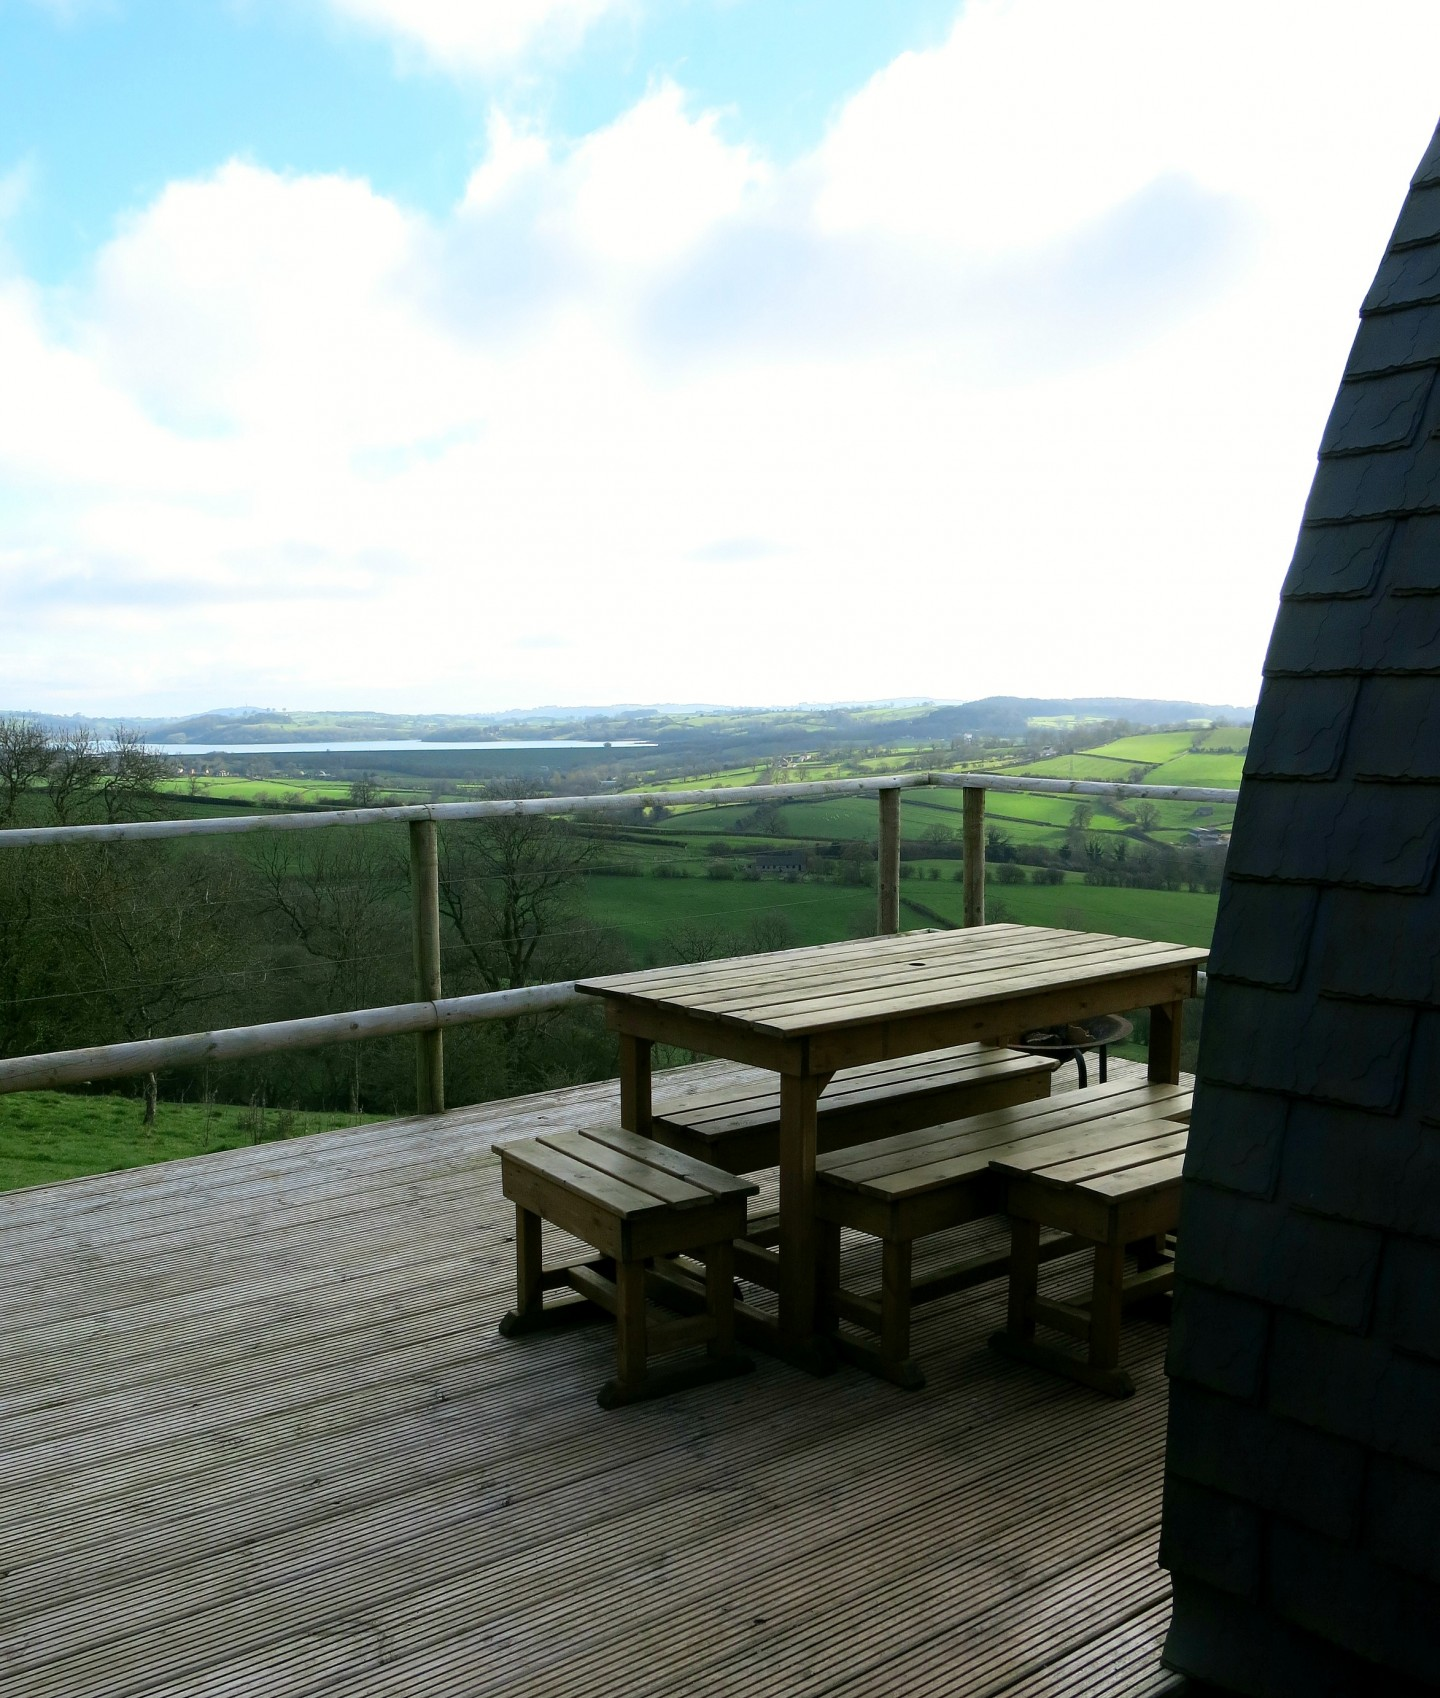 The view from our eco pod over Carsington valley in the Peak District.